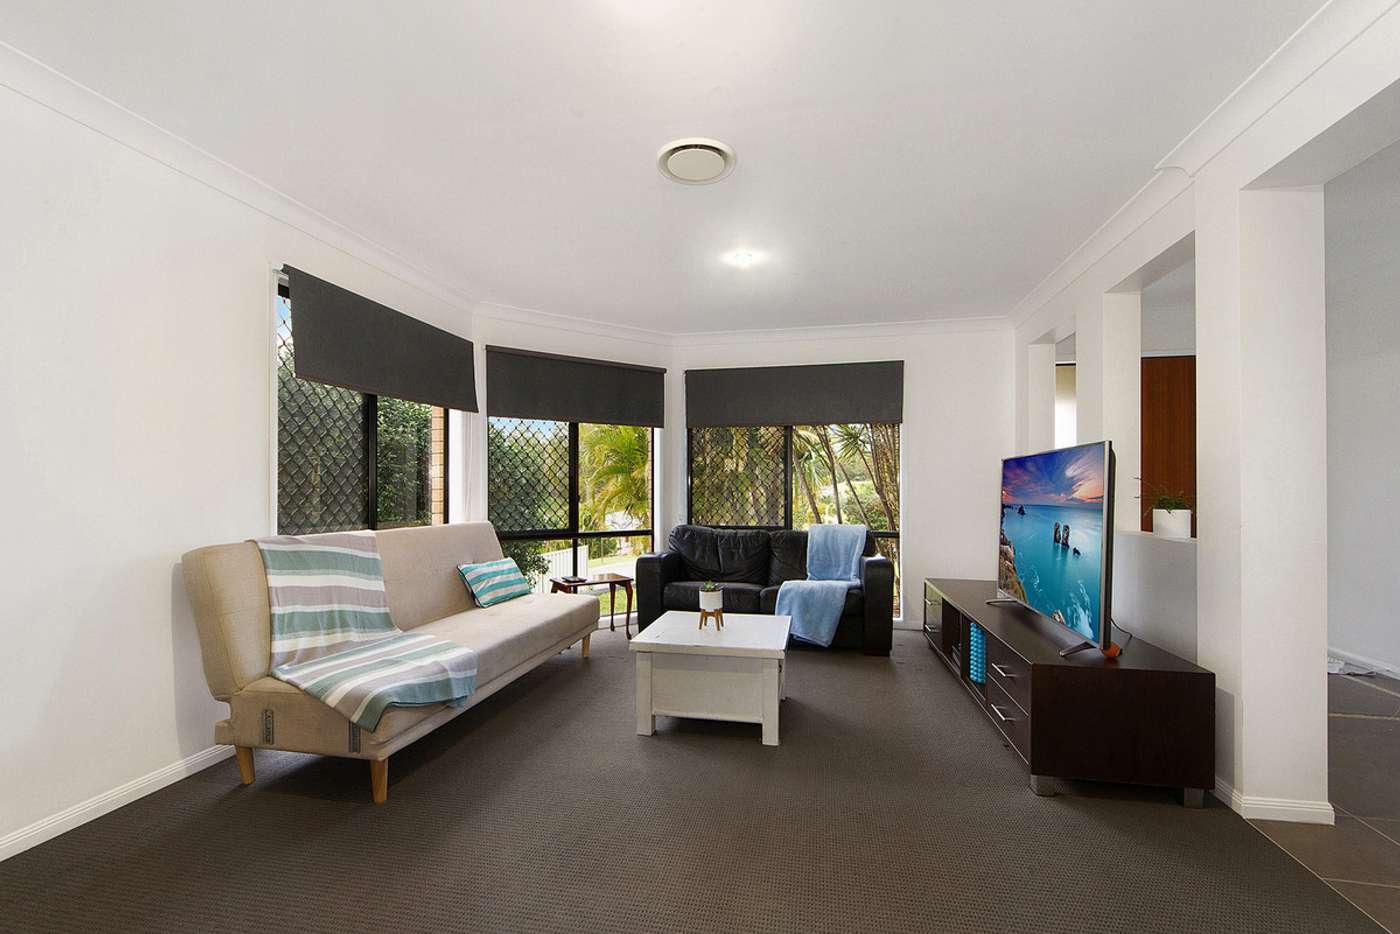 Seventh view of Homely house listing, 21 Snowwood Street, Reedy Creek QLD 4227